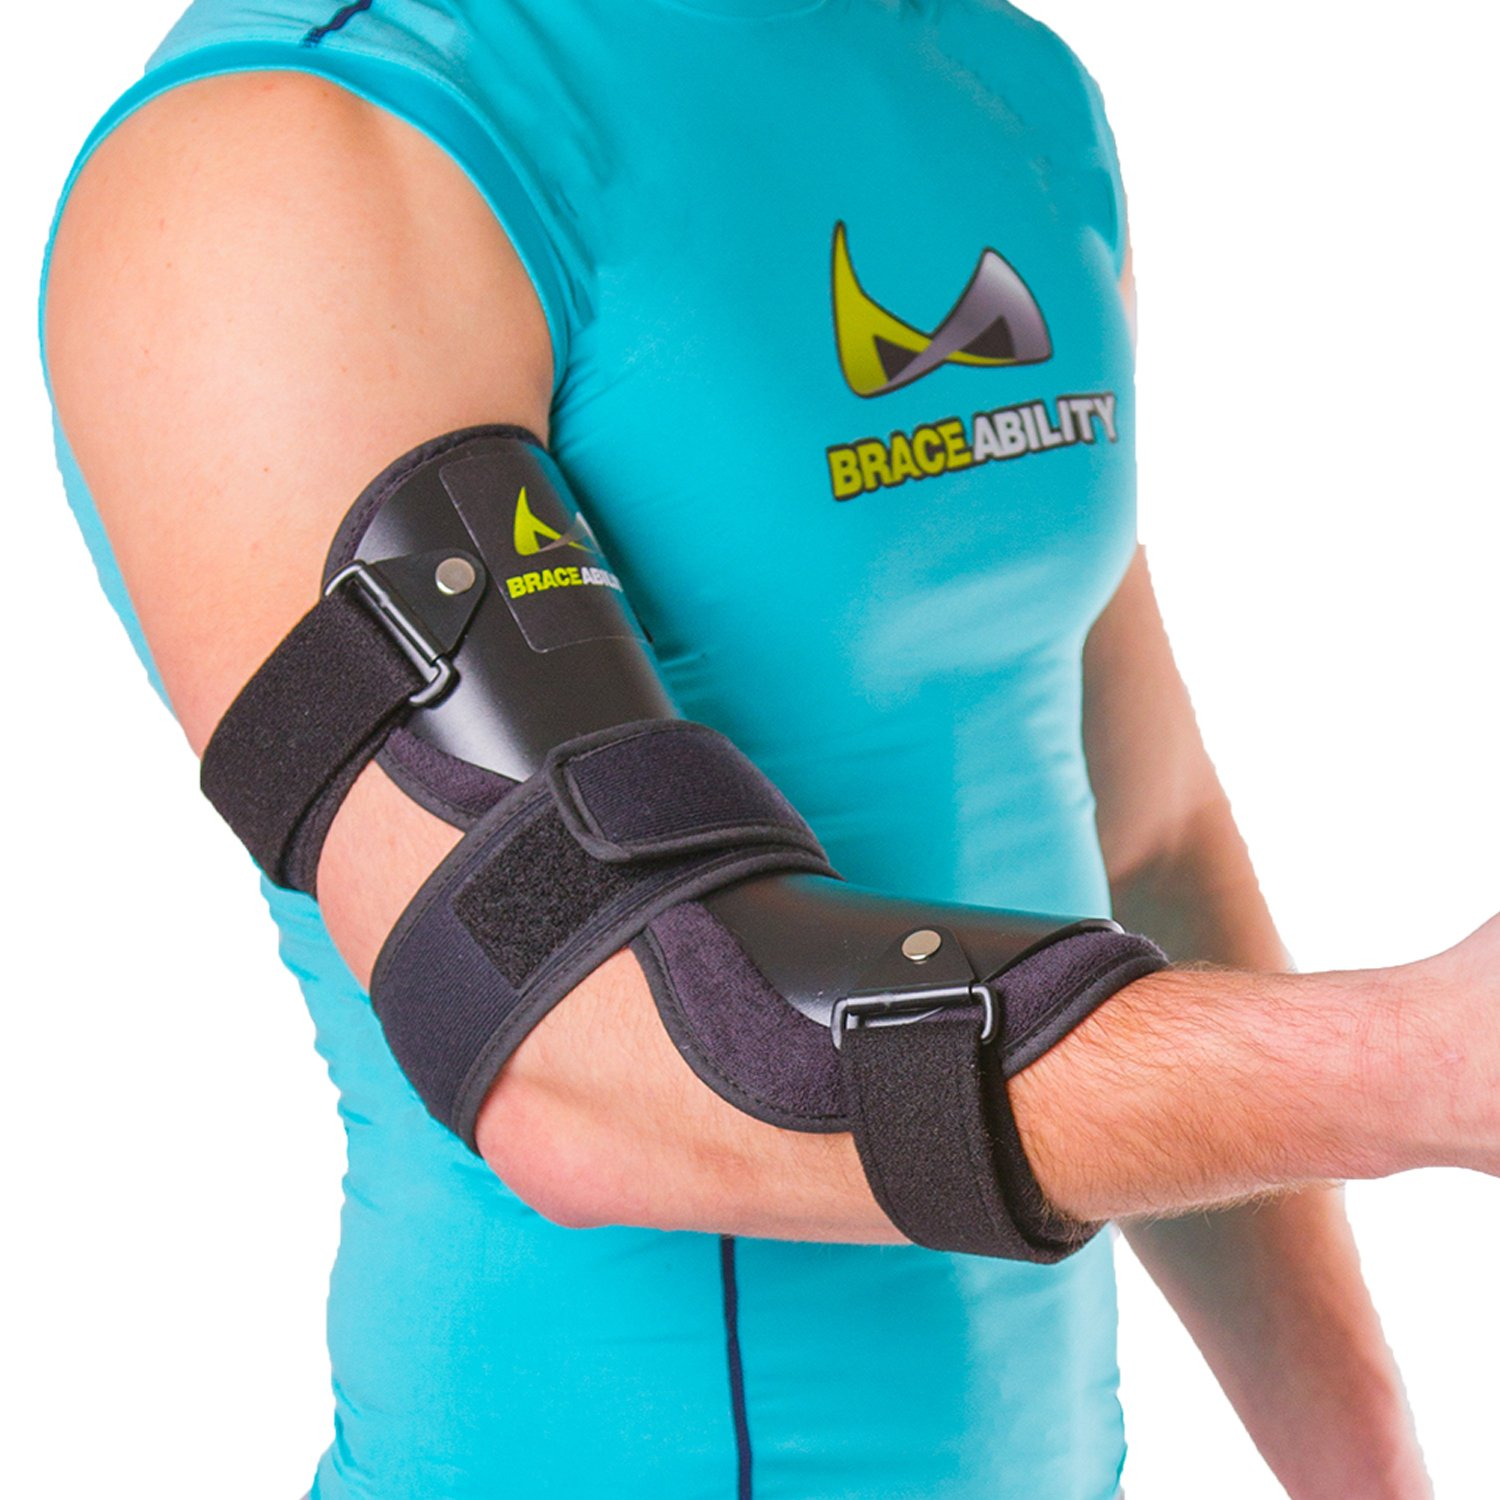 BraceAbility Cubital Tunnel Syndrome Elbow Brace | Splint to Treat Pain from Ulnar Nerve Entrapment, Hyperextended Elbow Prevention and Post Surgery Arm Immobilizer - S (Small/Medium)